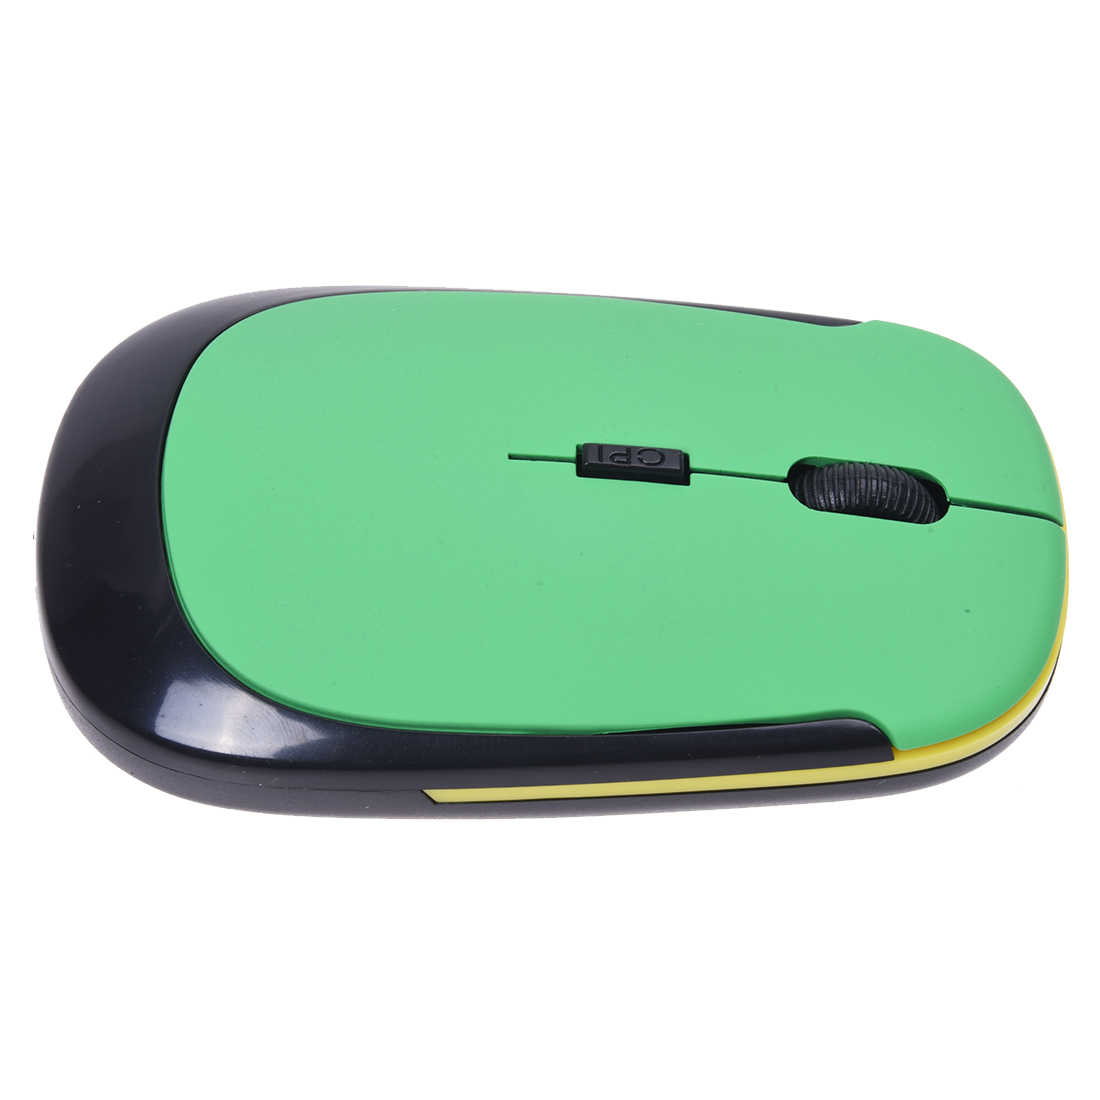 547bf15141f Ultra-Slim Mini USB Wireless Optical Wheel Mouse Mice for All Laptop HP  Dell(